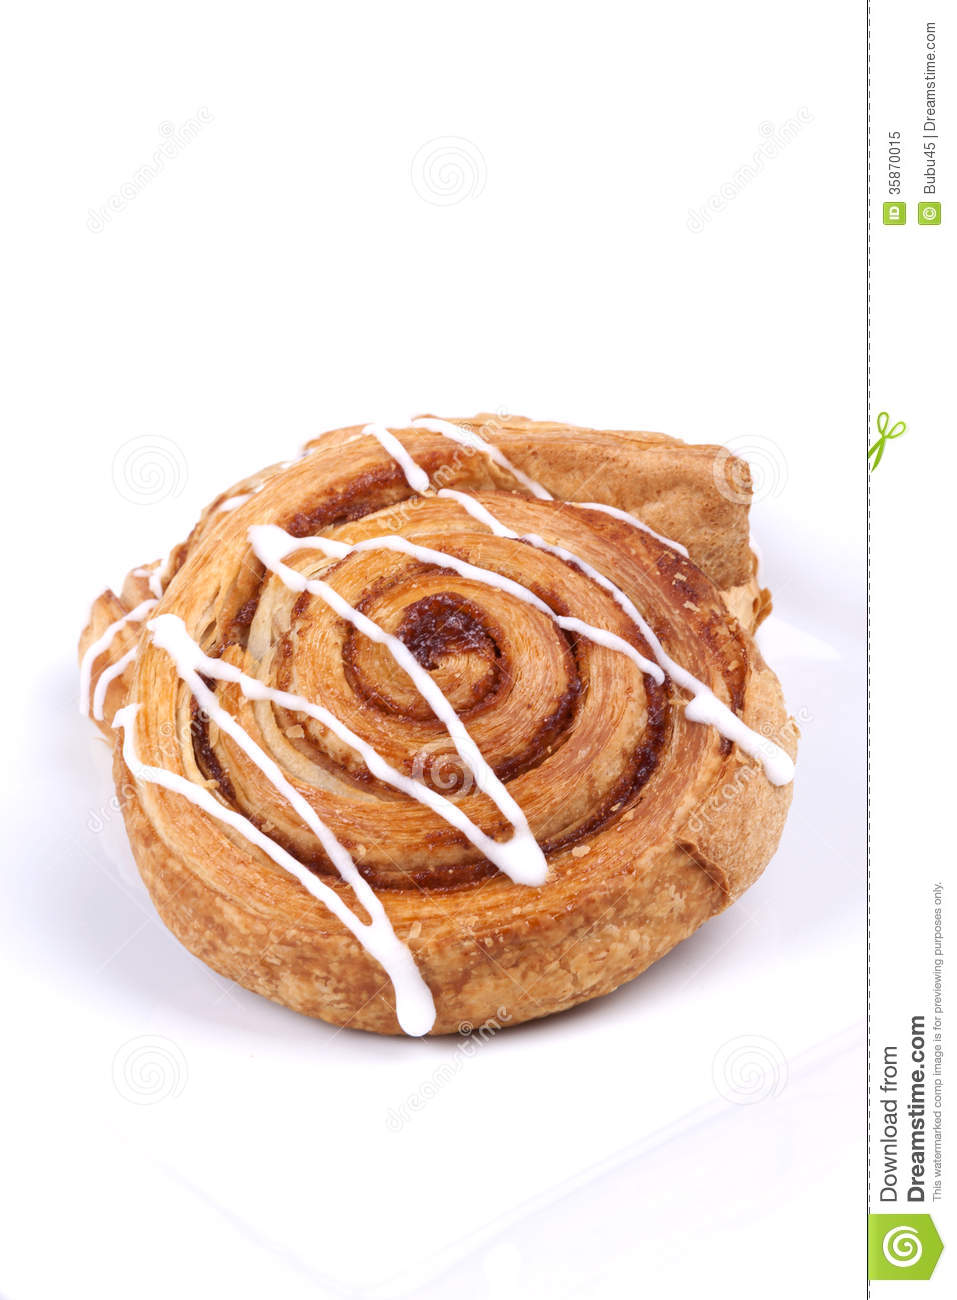 Cinnamon Roll Royalty Free Stock Photo - Image: 35870015